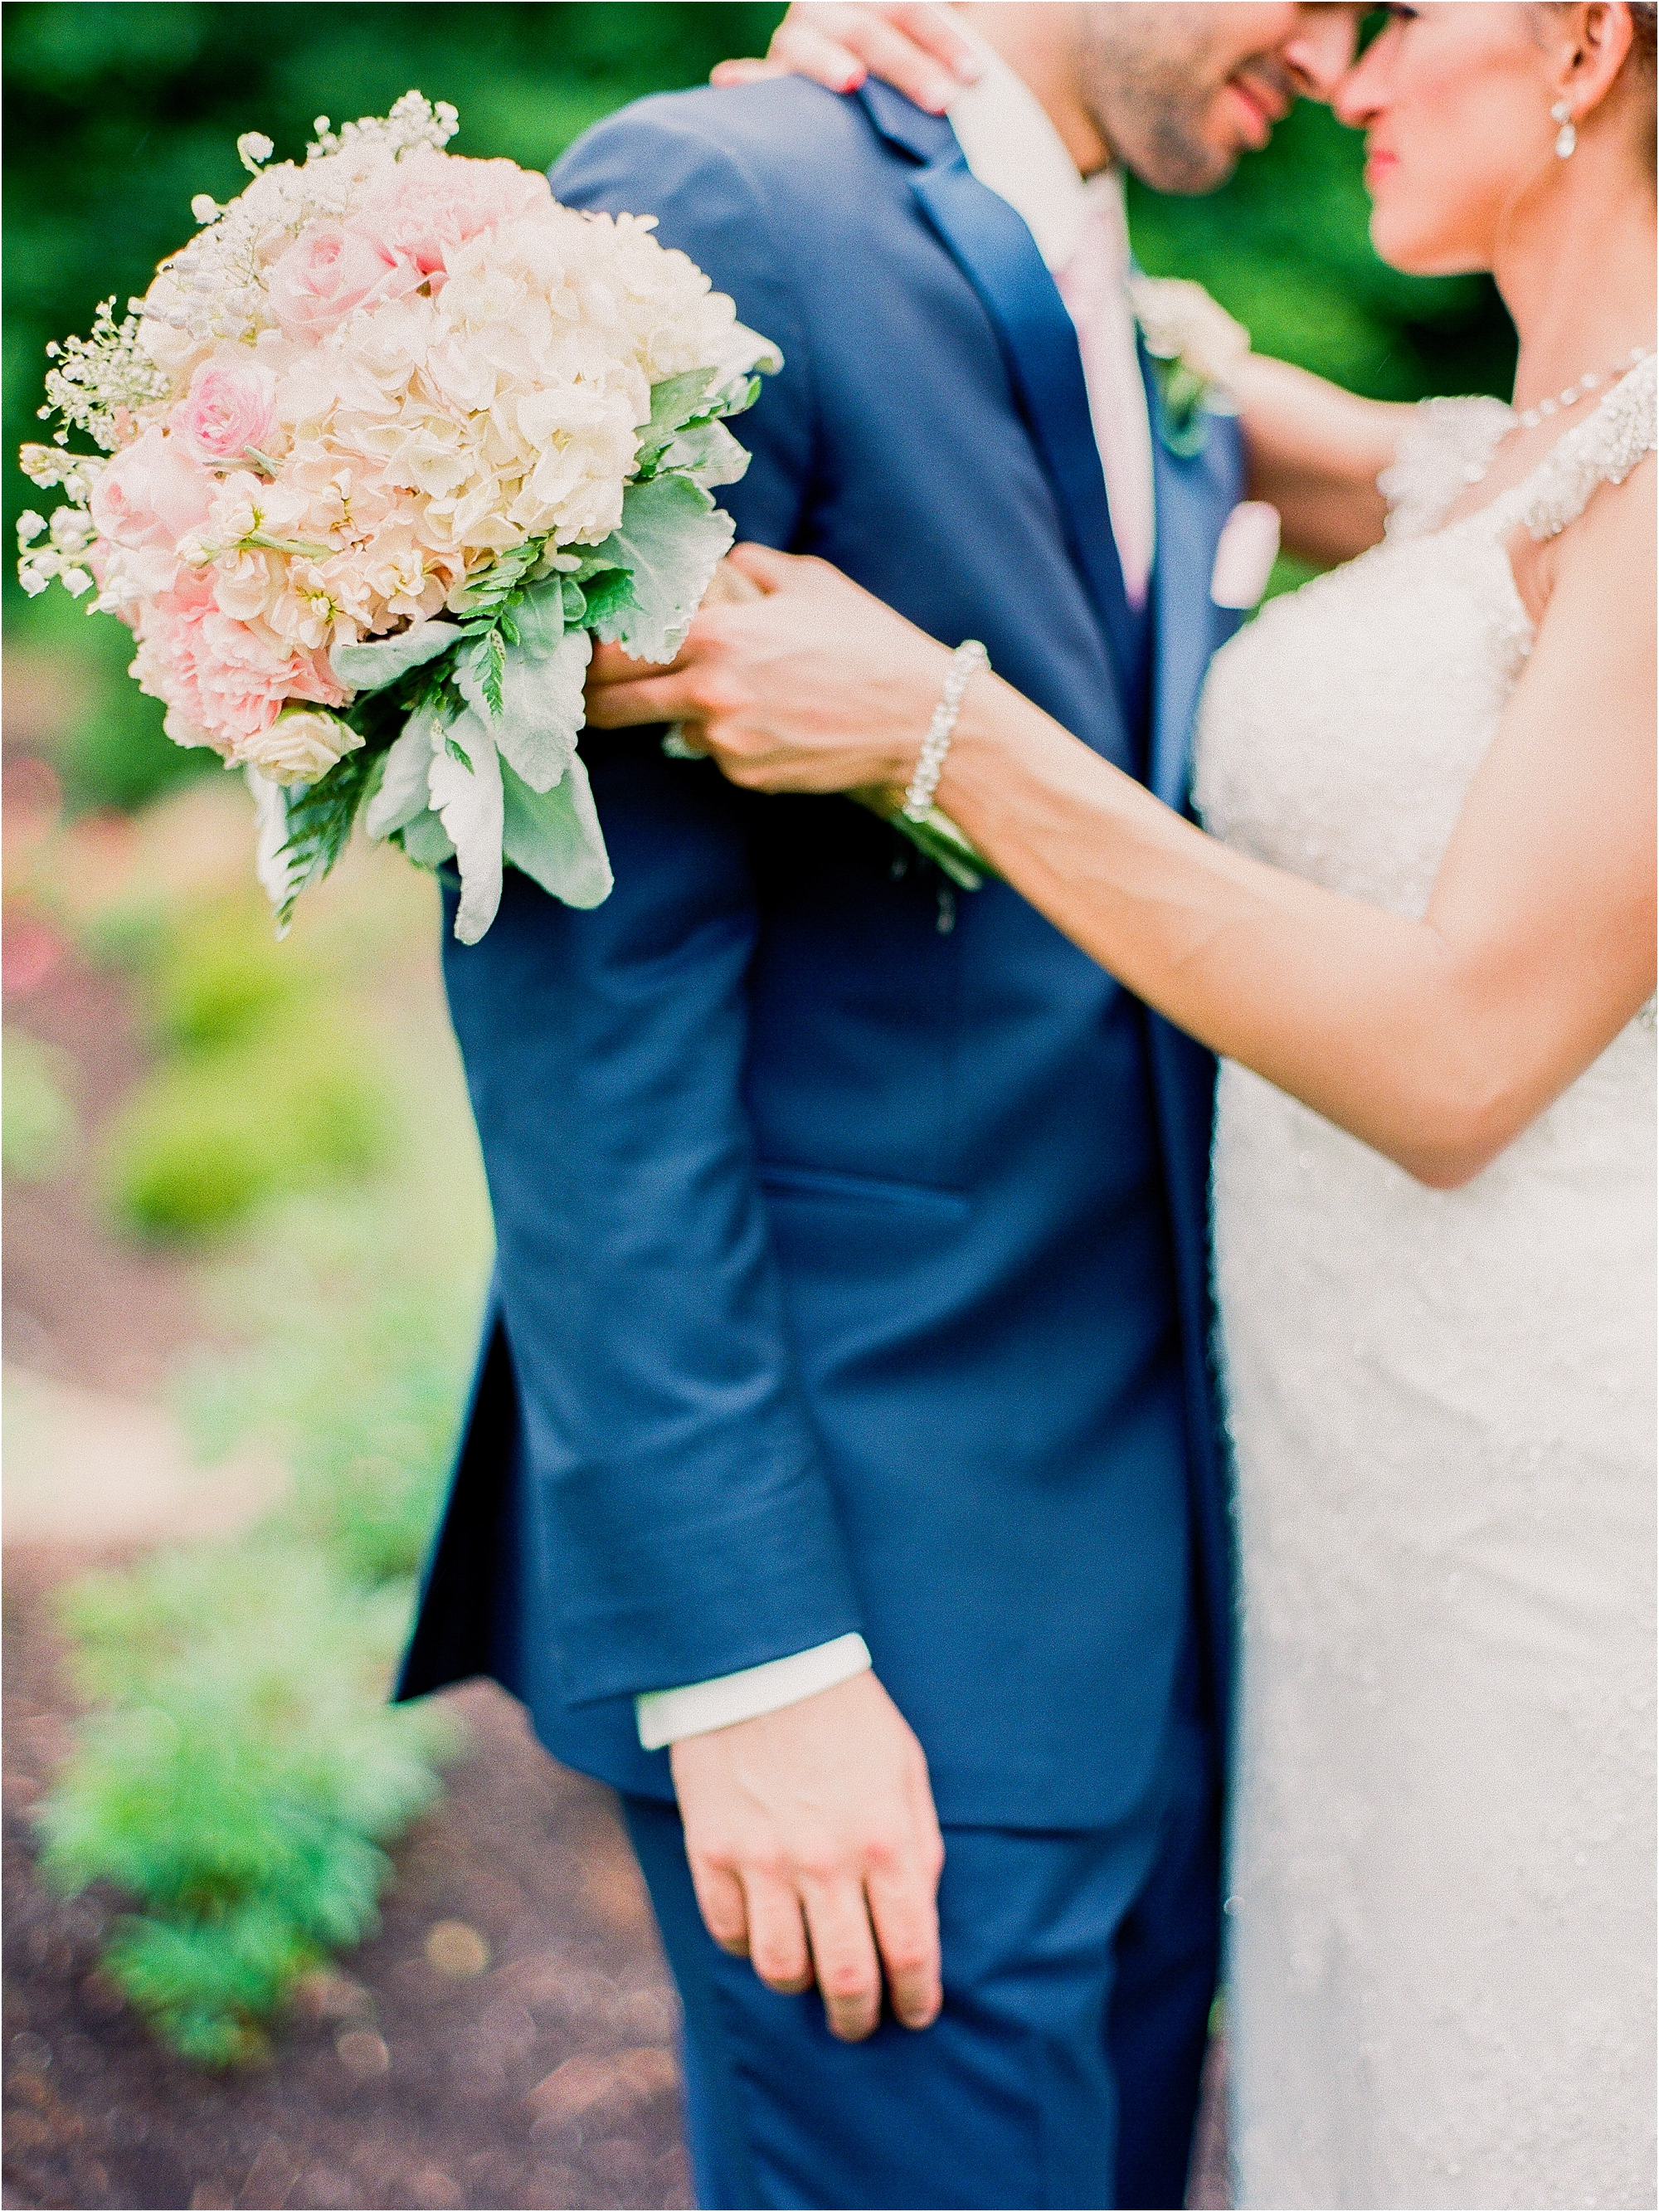 3 Things Every Photographer Needs to Know About Bouquets - The Jordan Brittley Blog